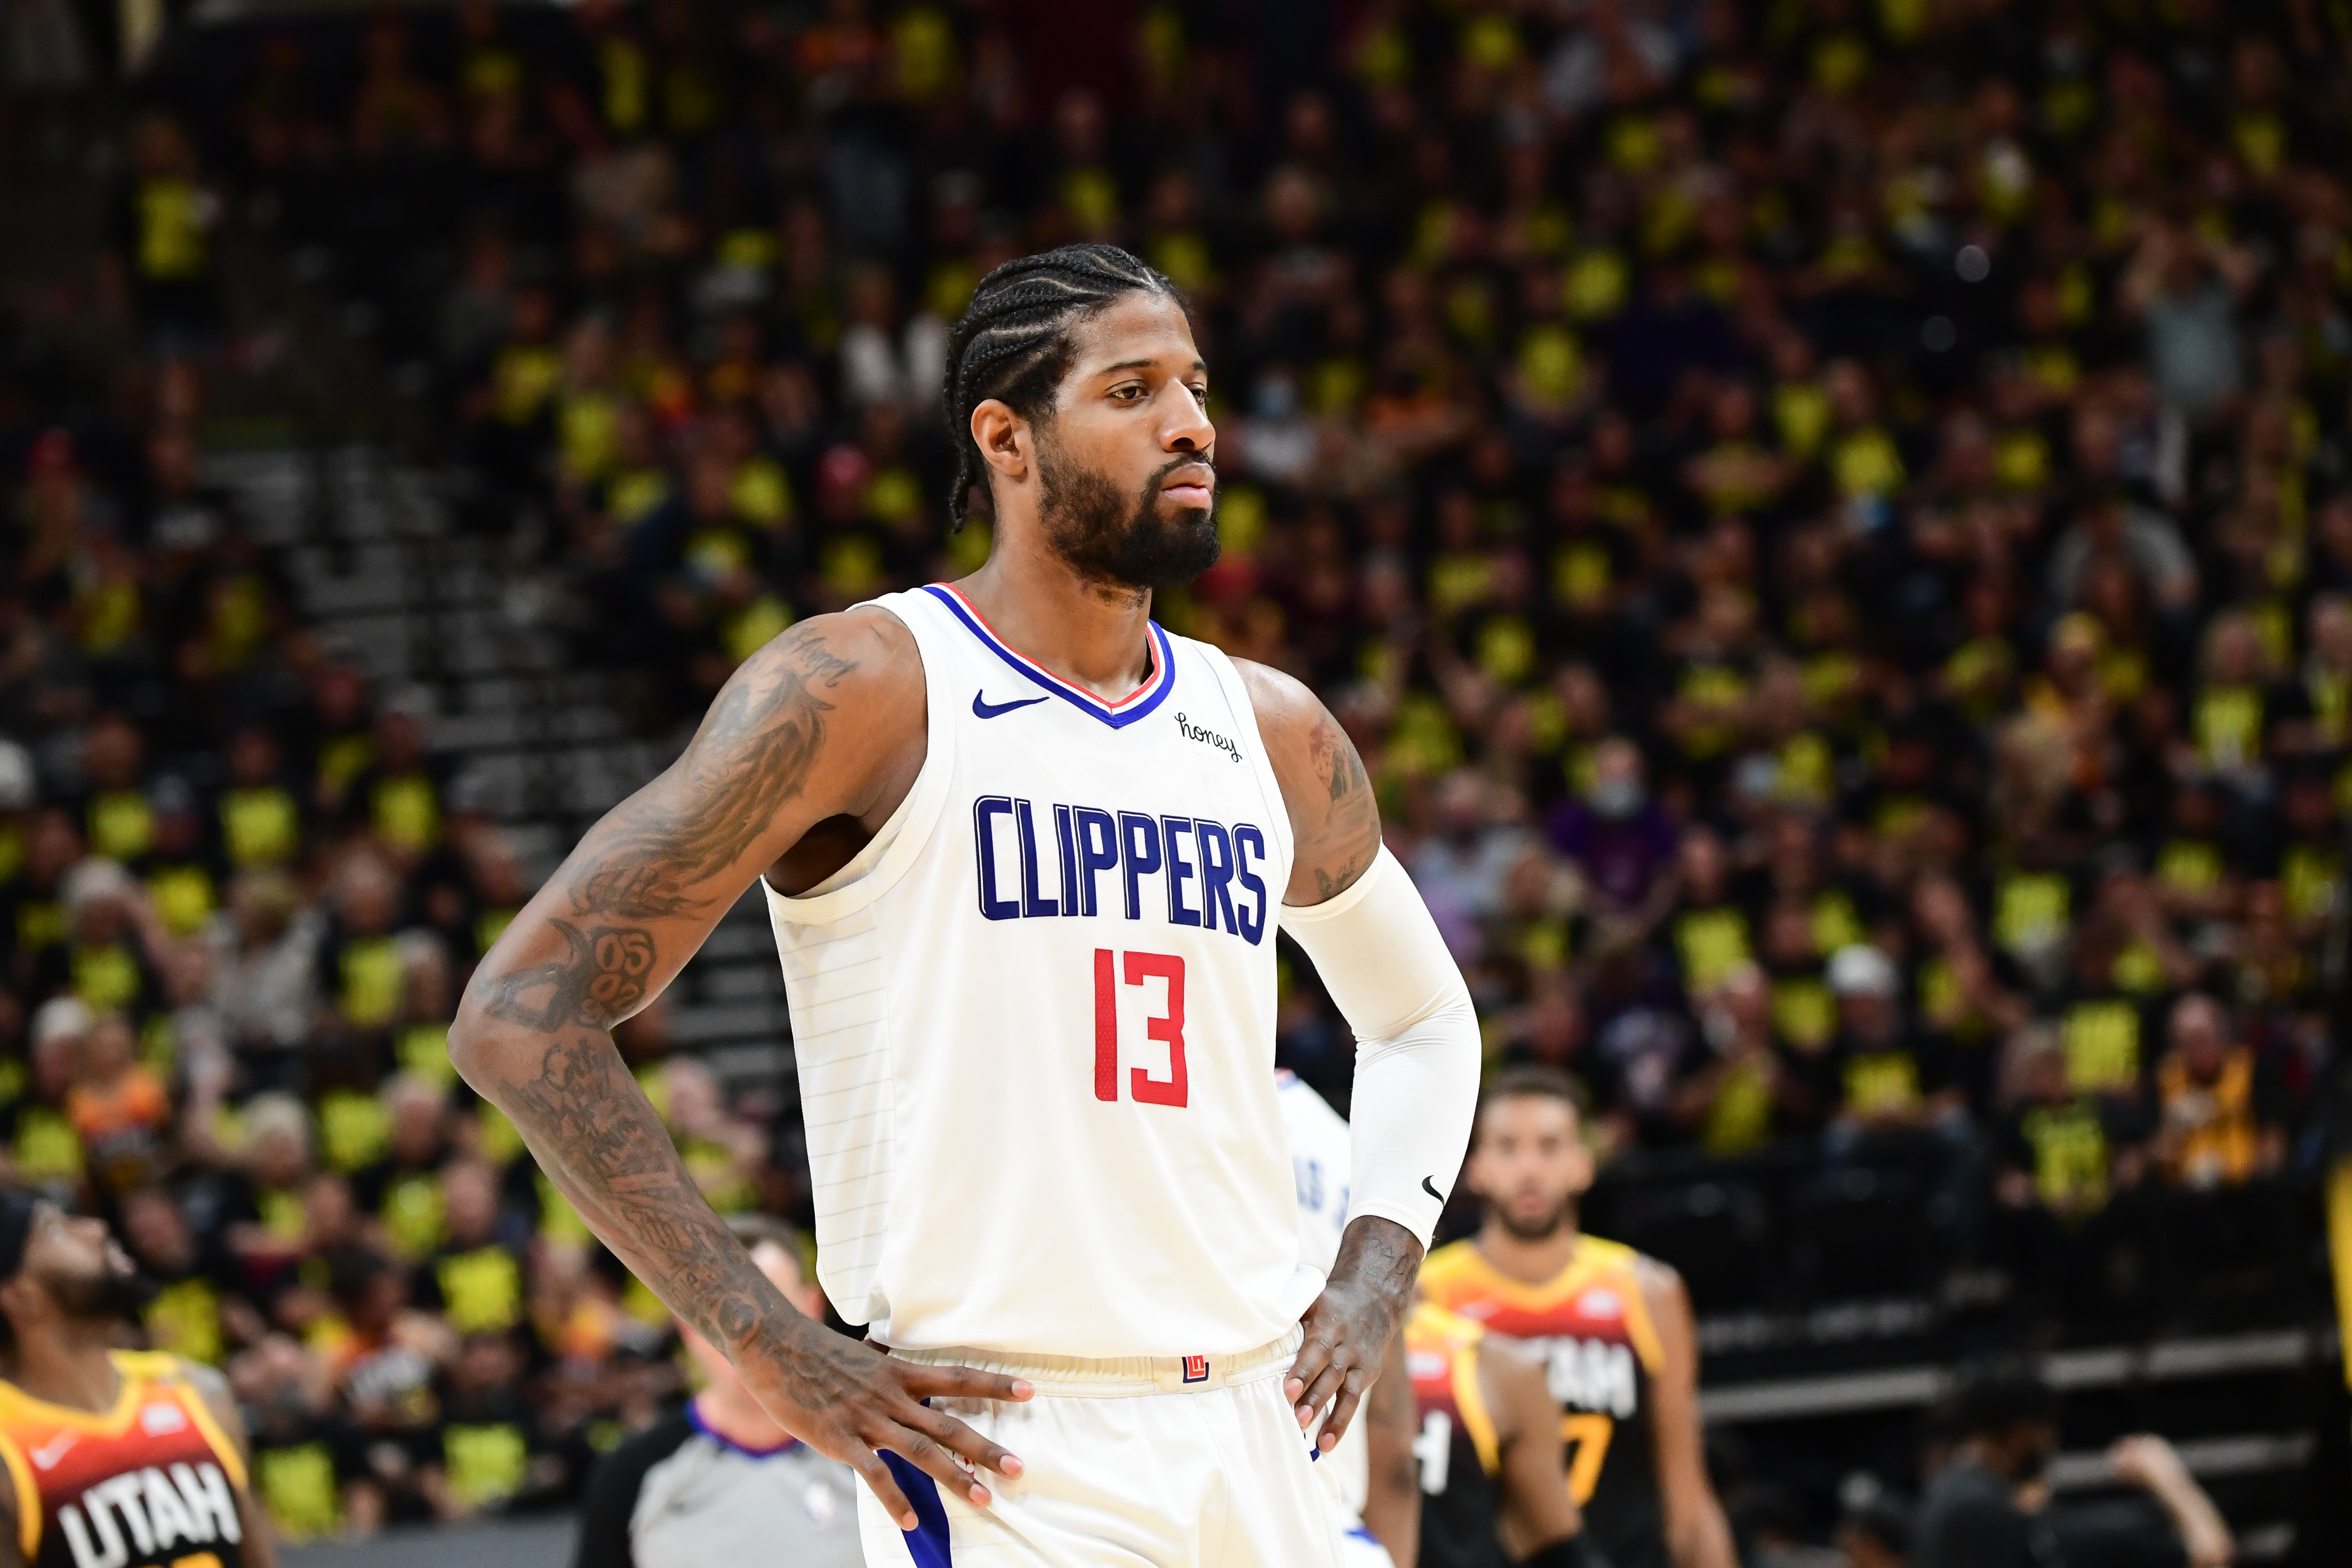 Paul George of the LA Clippers looks on during the game against the Utah Jazz during Round 2, Game 5 of the 2021 NBA Playoffs on June 16, 2021 at vivint.SmartHome Arena in Salt Lake City, Utah.